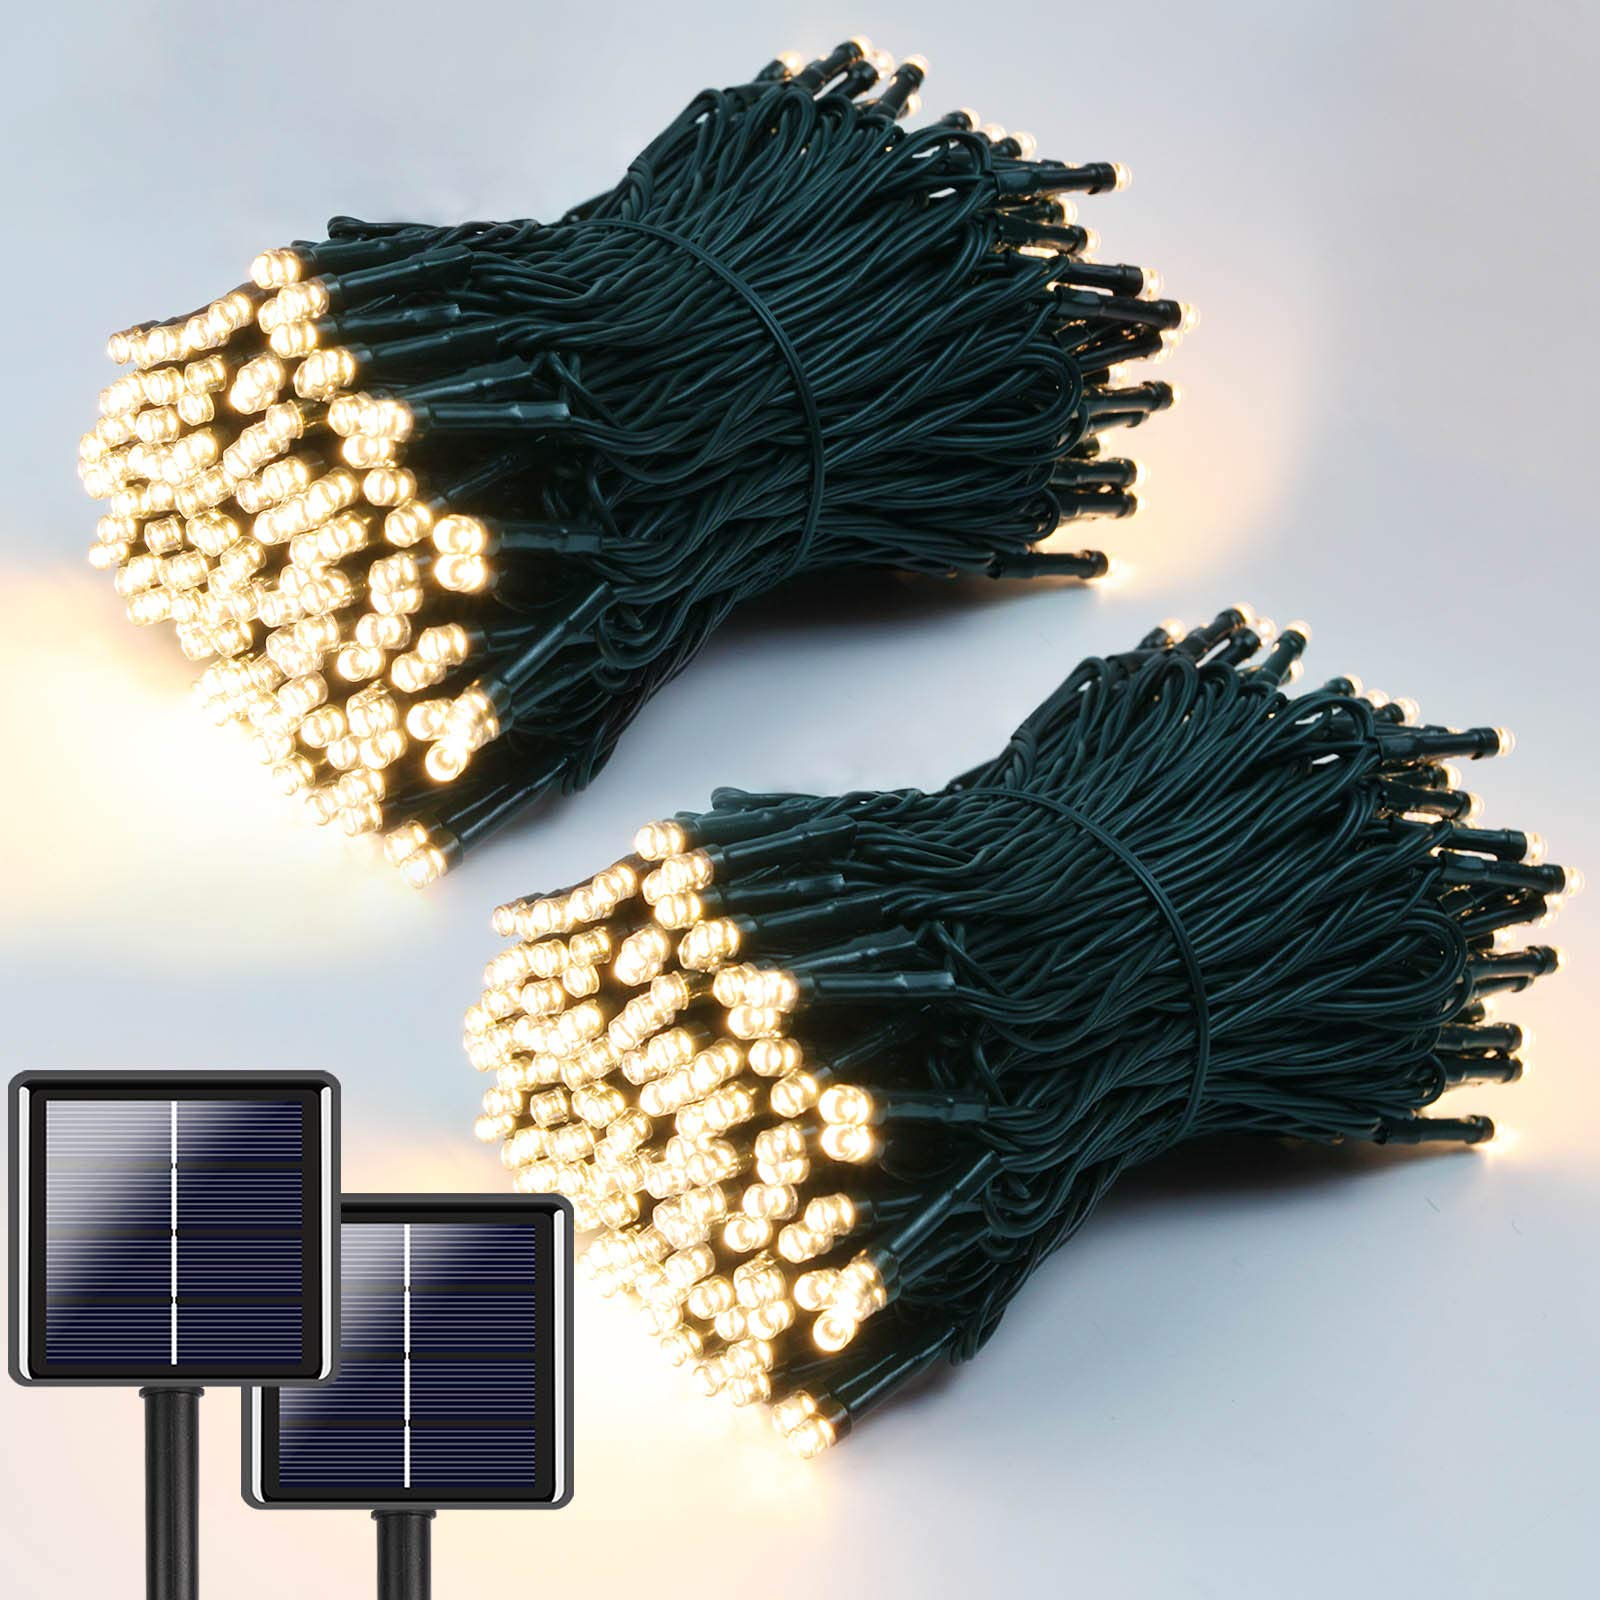 2-Pack Each 72ft 200 LED Solar String Lights Outdoor (Upgraded Ultra-Bright & Extra-Long Green Wire), Waterproof Solar Lights Outdoor Decorative, 8 Modes Solar Fairy Lights (Warm White)